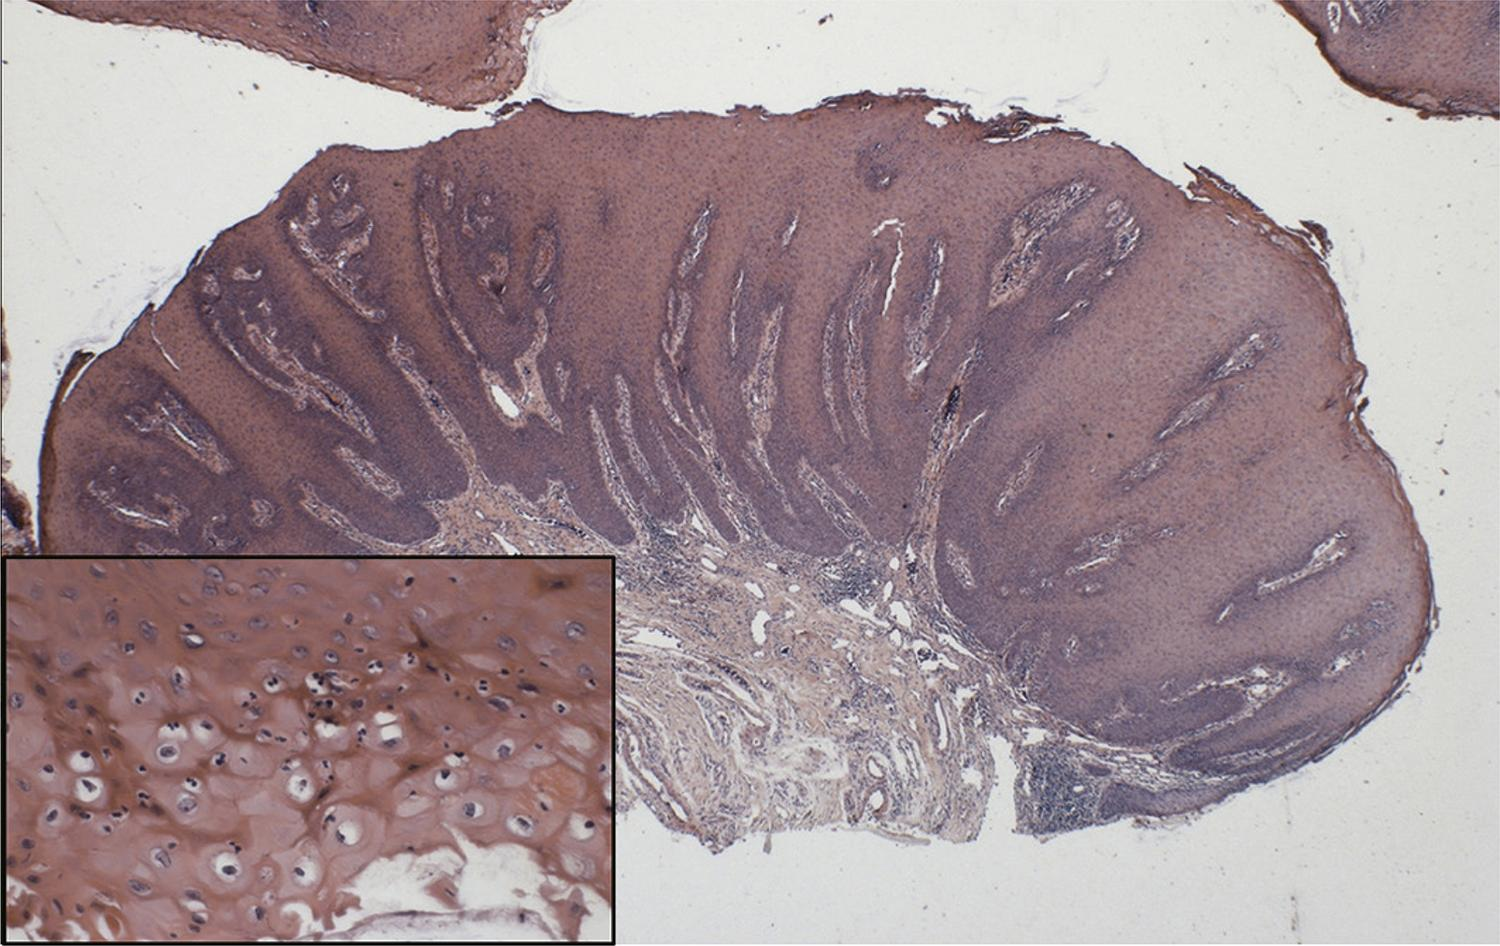 Histopathological examination of the lesion showing epithelial proliferation forming projections towards the connective tissue. In detail, epithelial cells showing a clear perinuclear halo compatible with koilocytosis.